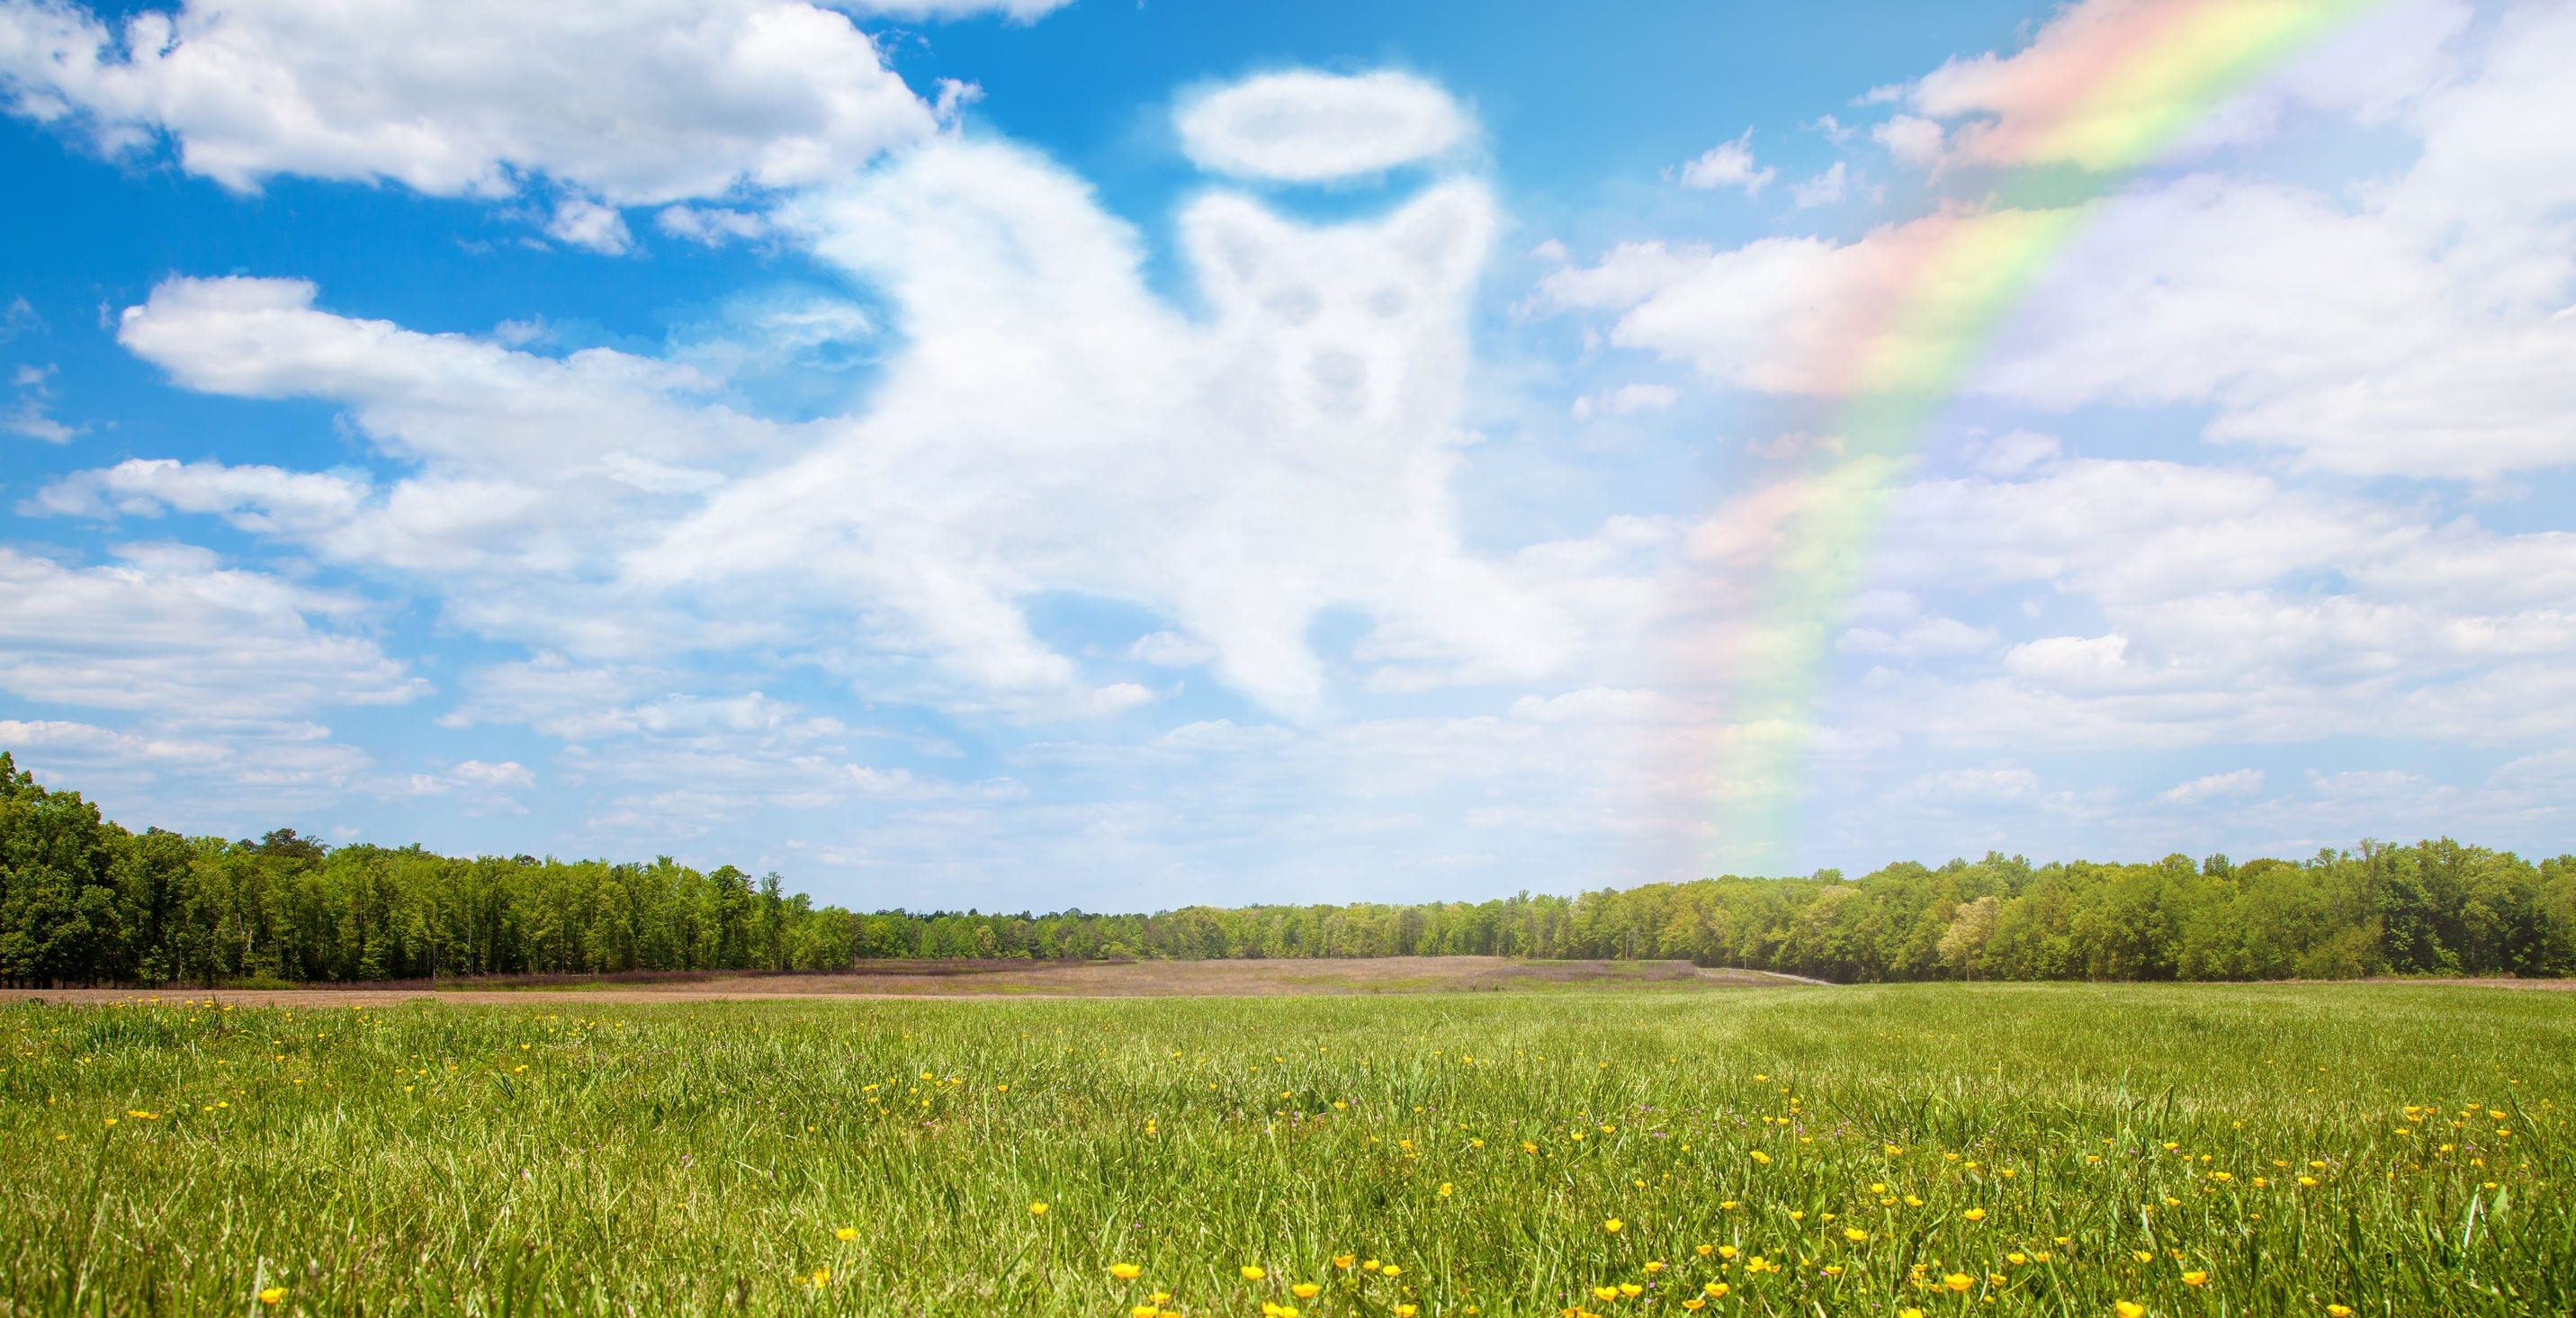 Rainbow Bridge Poem and Dealing With the Loss of a Pet